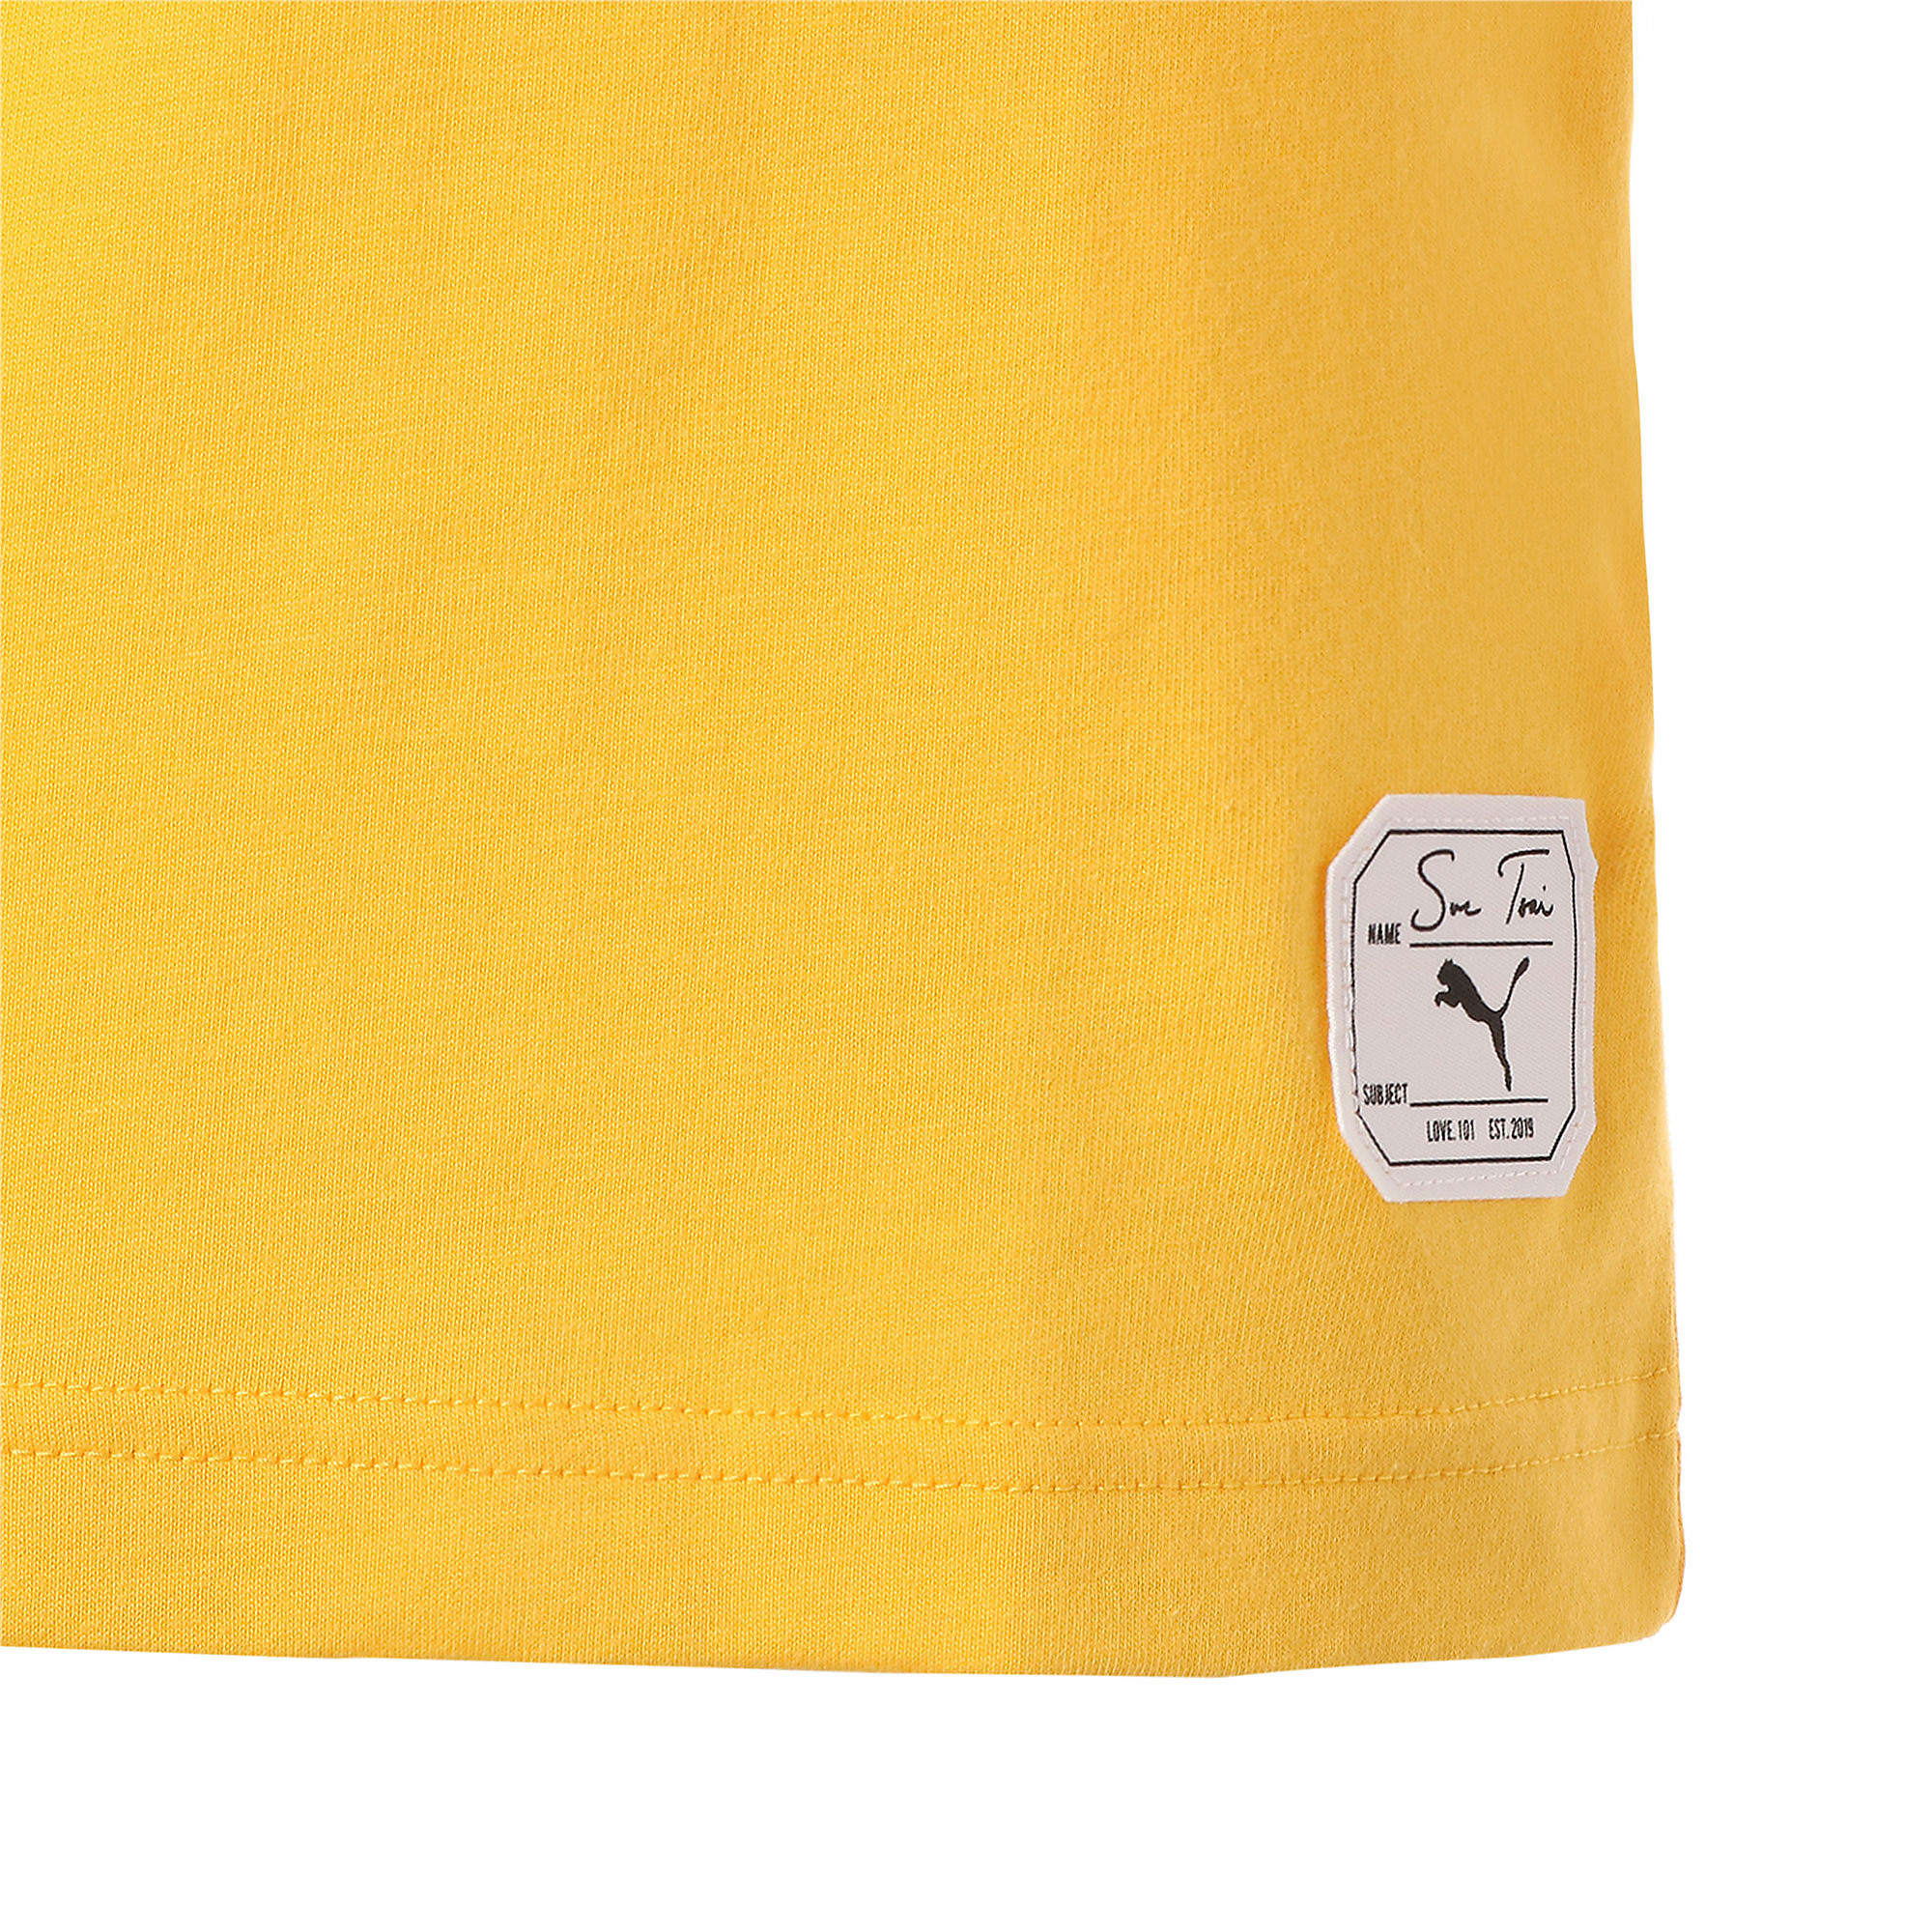 Thumbnail 6 of PUMA x SUE TSAI ウィメンズ Tシャツ, Daffodil, medium-JPN